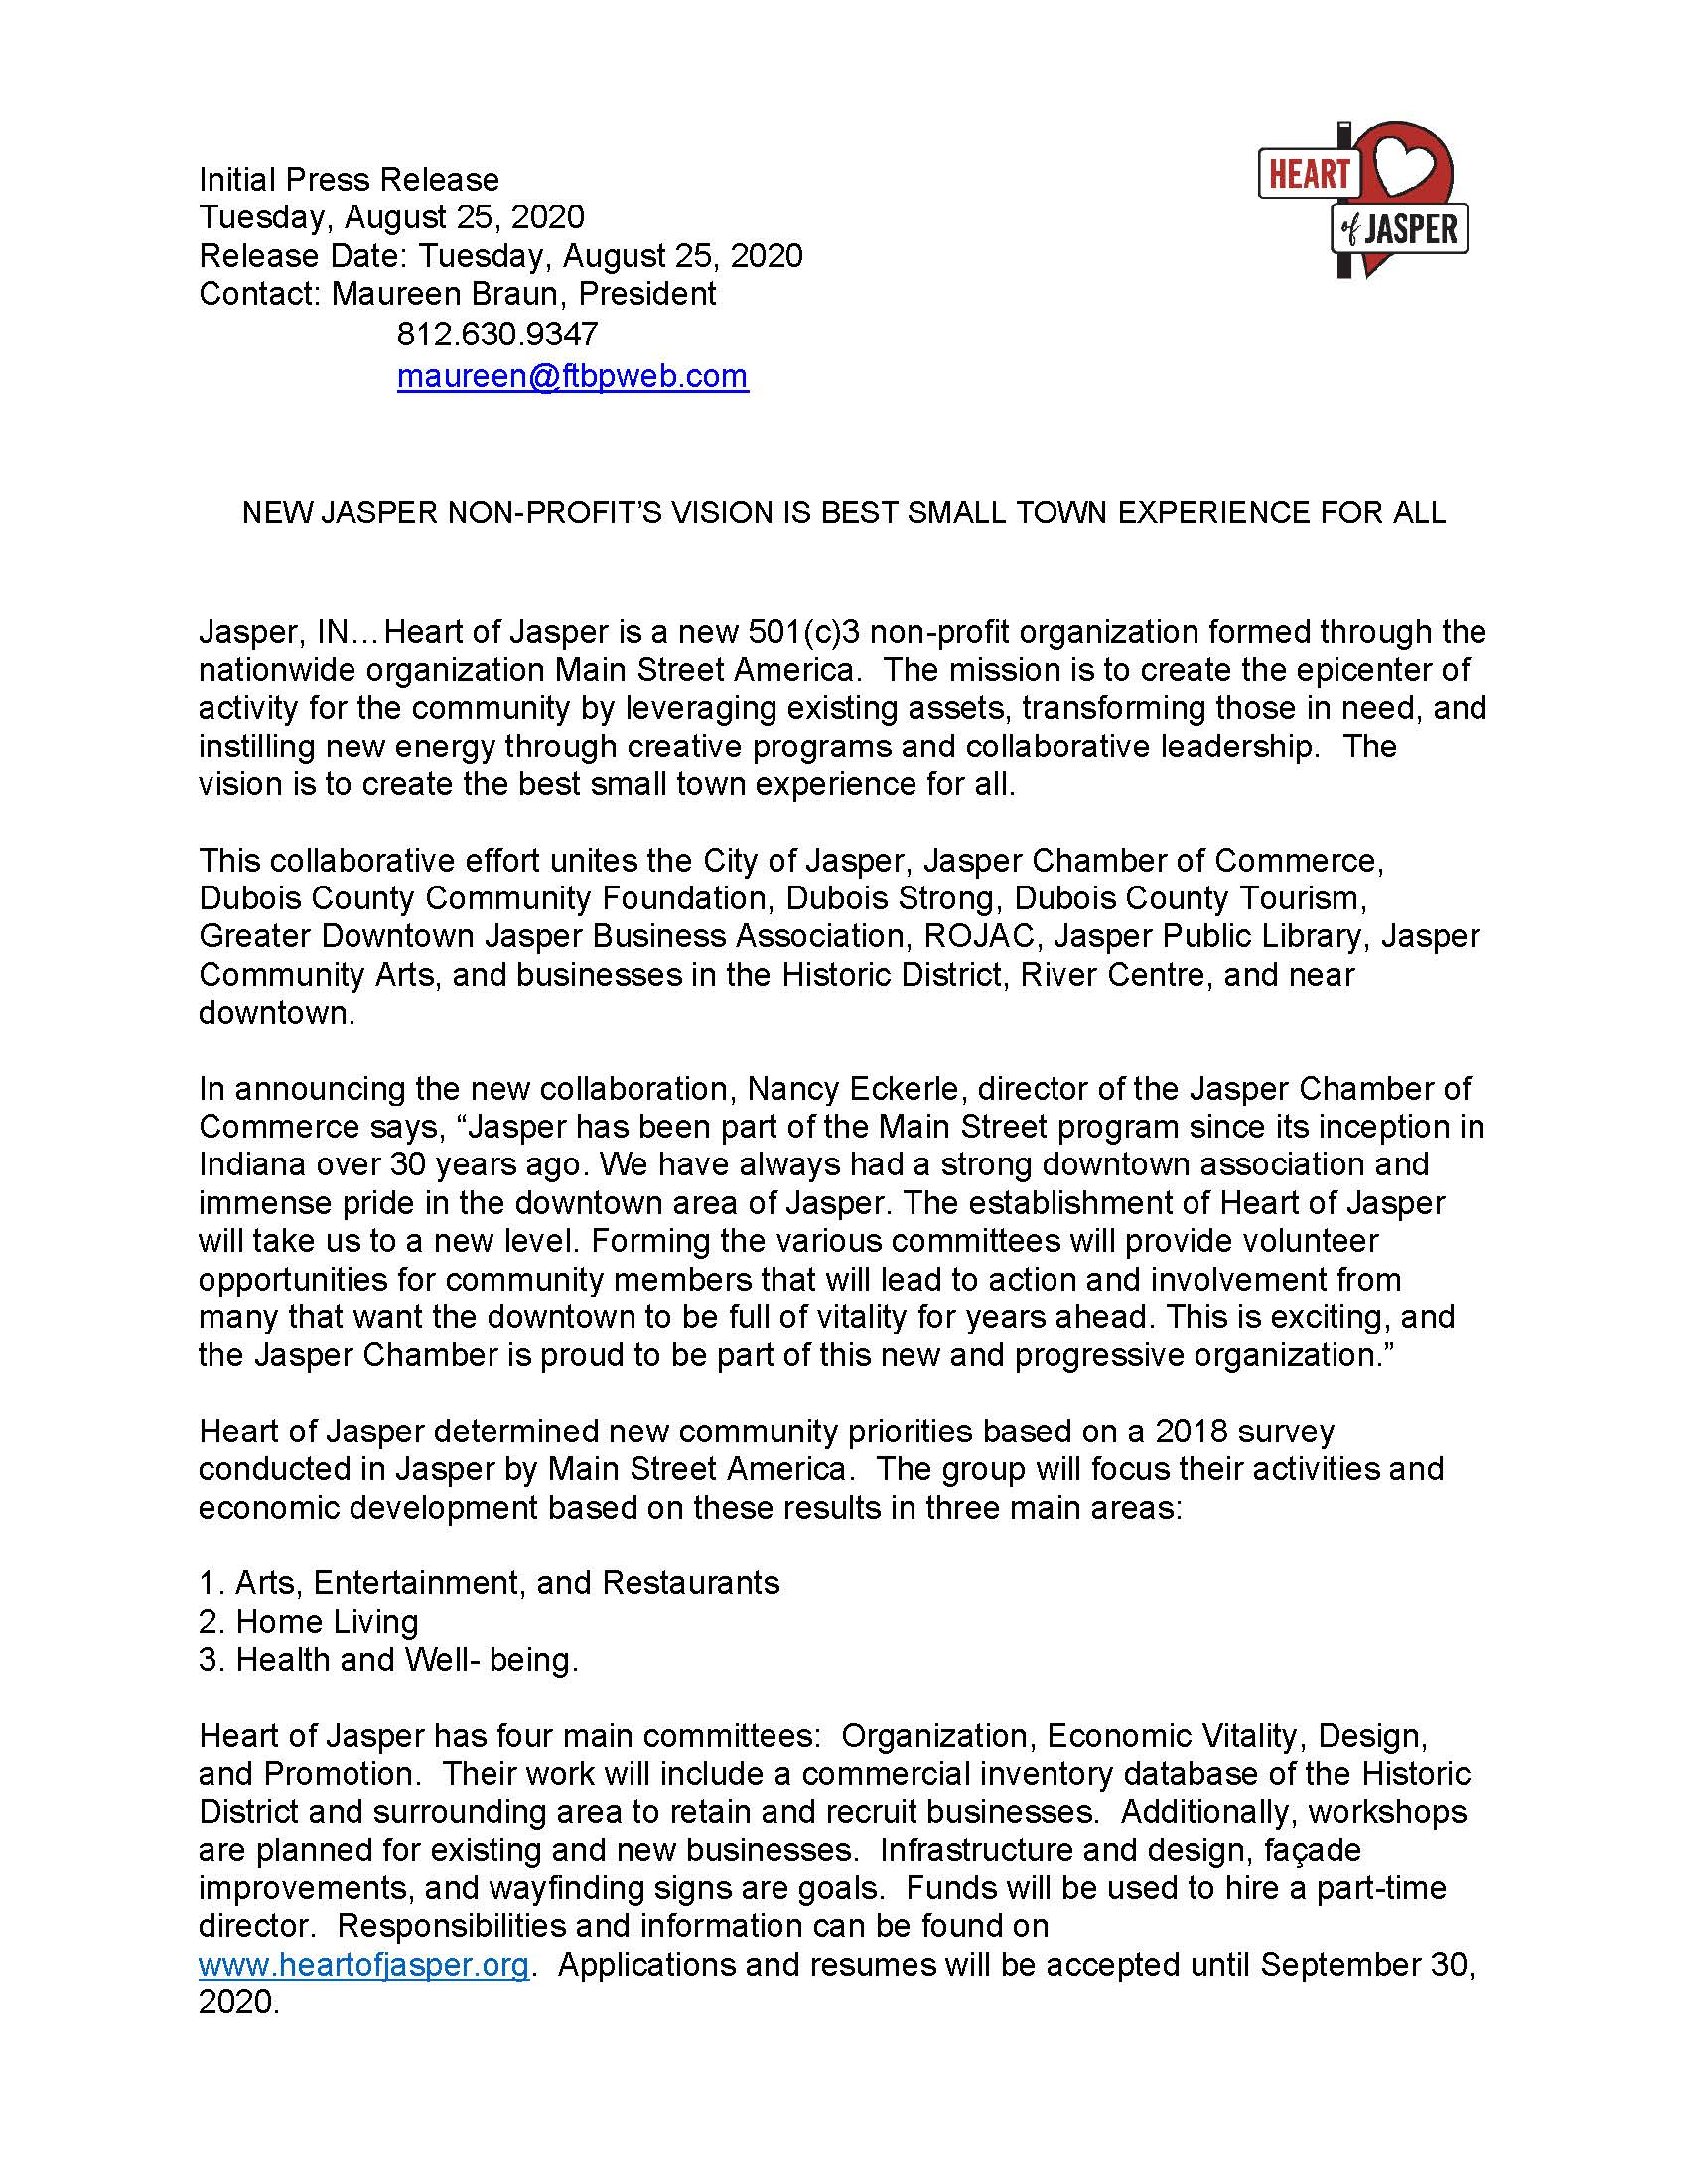 Heart of Jasper News Release_Page1